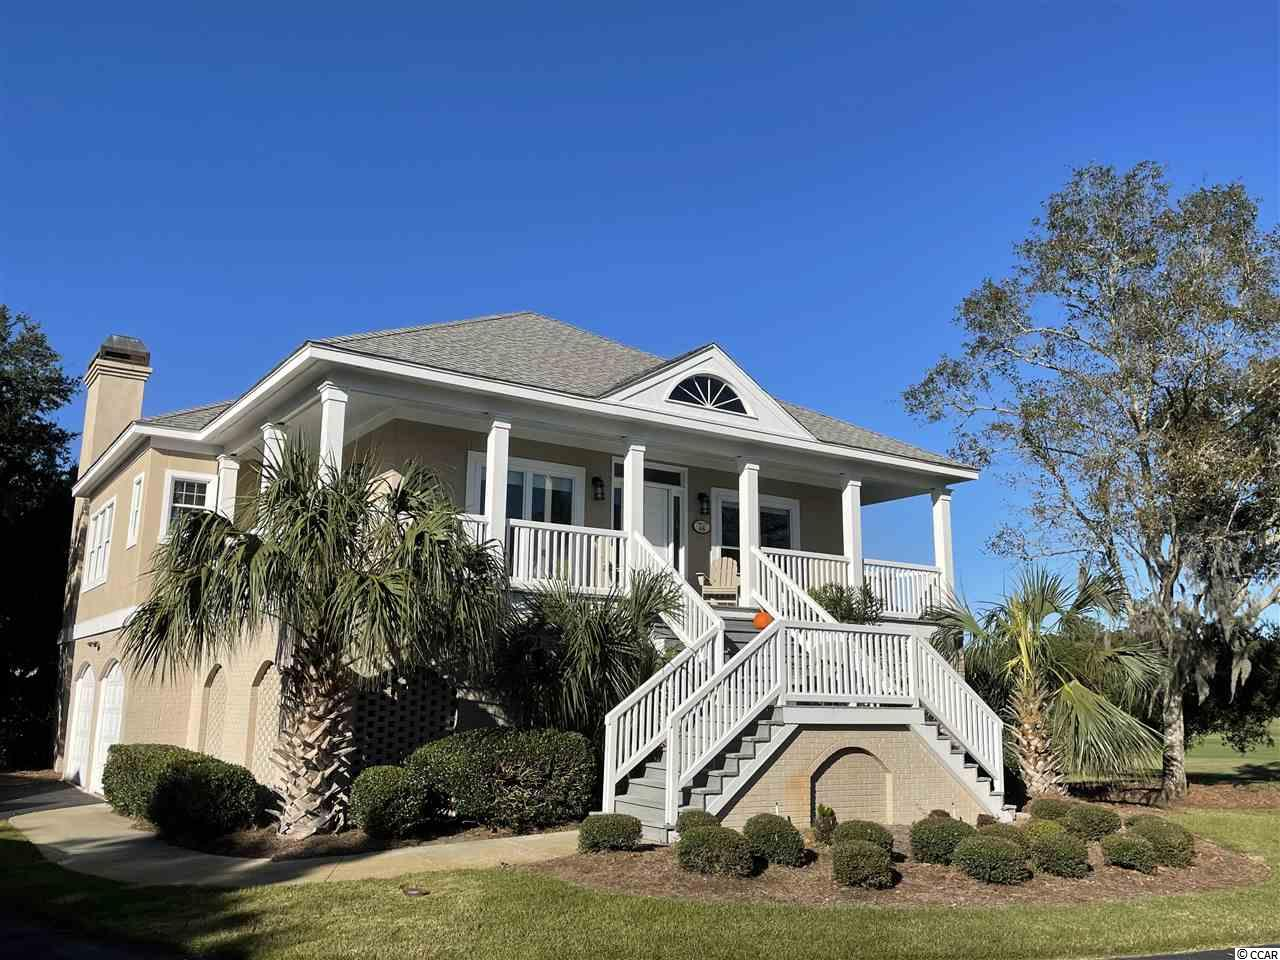 """Located in the one of the most exquisite gated communities on the coast of South Carolina, Debordieu Colony. Debordieu is located between Charleston and Myrtle Beach, just south of Pawleys Island. This Fairway Oaks free standing golf villa is just a short golf cart ride to the beautiful secluded beach. The raised beach style, 3 bedroom, 3 bath villa, all one level living offers an open floor plan with spectacular, panoramic views of Debordieu's Pete Dye private golf course from the spacious family room, dining room, screened porch, laundry and  kitchen! Recent upgrades throughout the home are a plus. In 2017, luxury vinyl plank flooring, all interior walls/trim painted, new granite in kitchen, new hardware on doors,  new interior and exterior light fixtures and roller shades.  In 2019, new kitchen stainless steel appliances, installed new gas logs in fireplace, new hot water heater and rescreened porch.  There is 2150 approx heated sqft of living with plenty of parking for your cars, boat, and golf cart all underneath with additional ample storage with optional lock-out space for rental flexibility. The Fairway Oaks community pool is steps away from the villa. Fairway Oaks monthly fee includes cable/internet, twice per week trash service, and all exterior grounds and building maintenance.  In addition, there is a boat landing access to North Inlet and the Atlantic, a 24 hour manned security gate, private Pete Dye golf course, a tennis & fitness center and an oceanfront Beach Club with dining, a ocean front gazebo bar, pool and playground. You may just say... """"There is truly no place like a home in Debordieu!"""""""